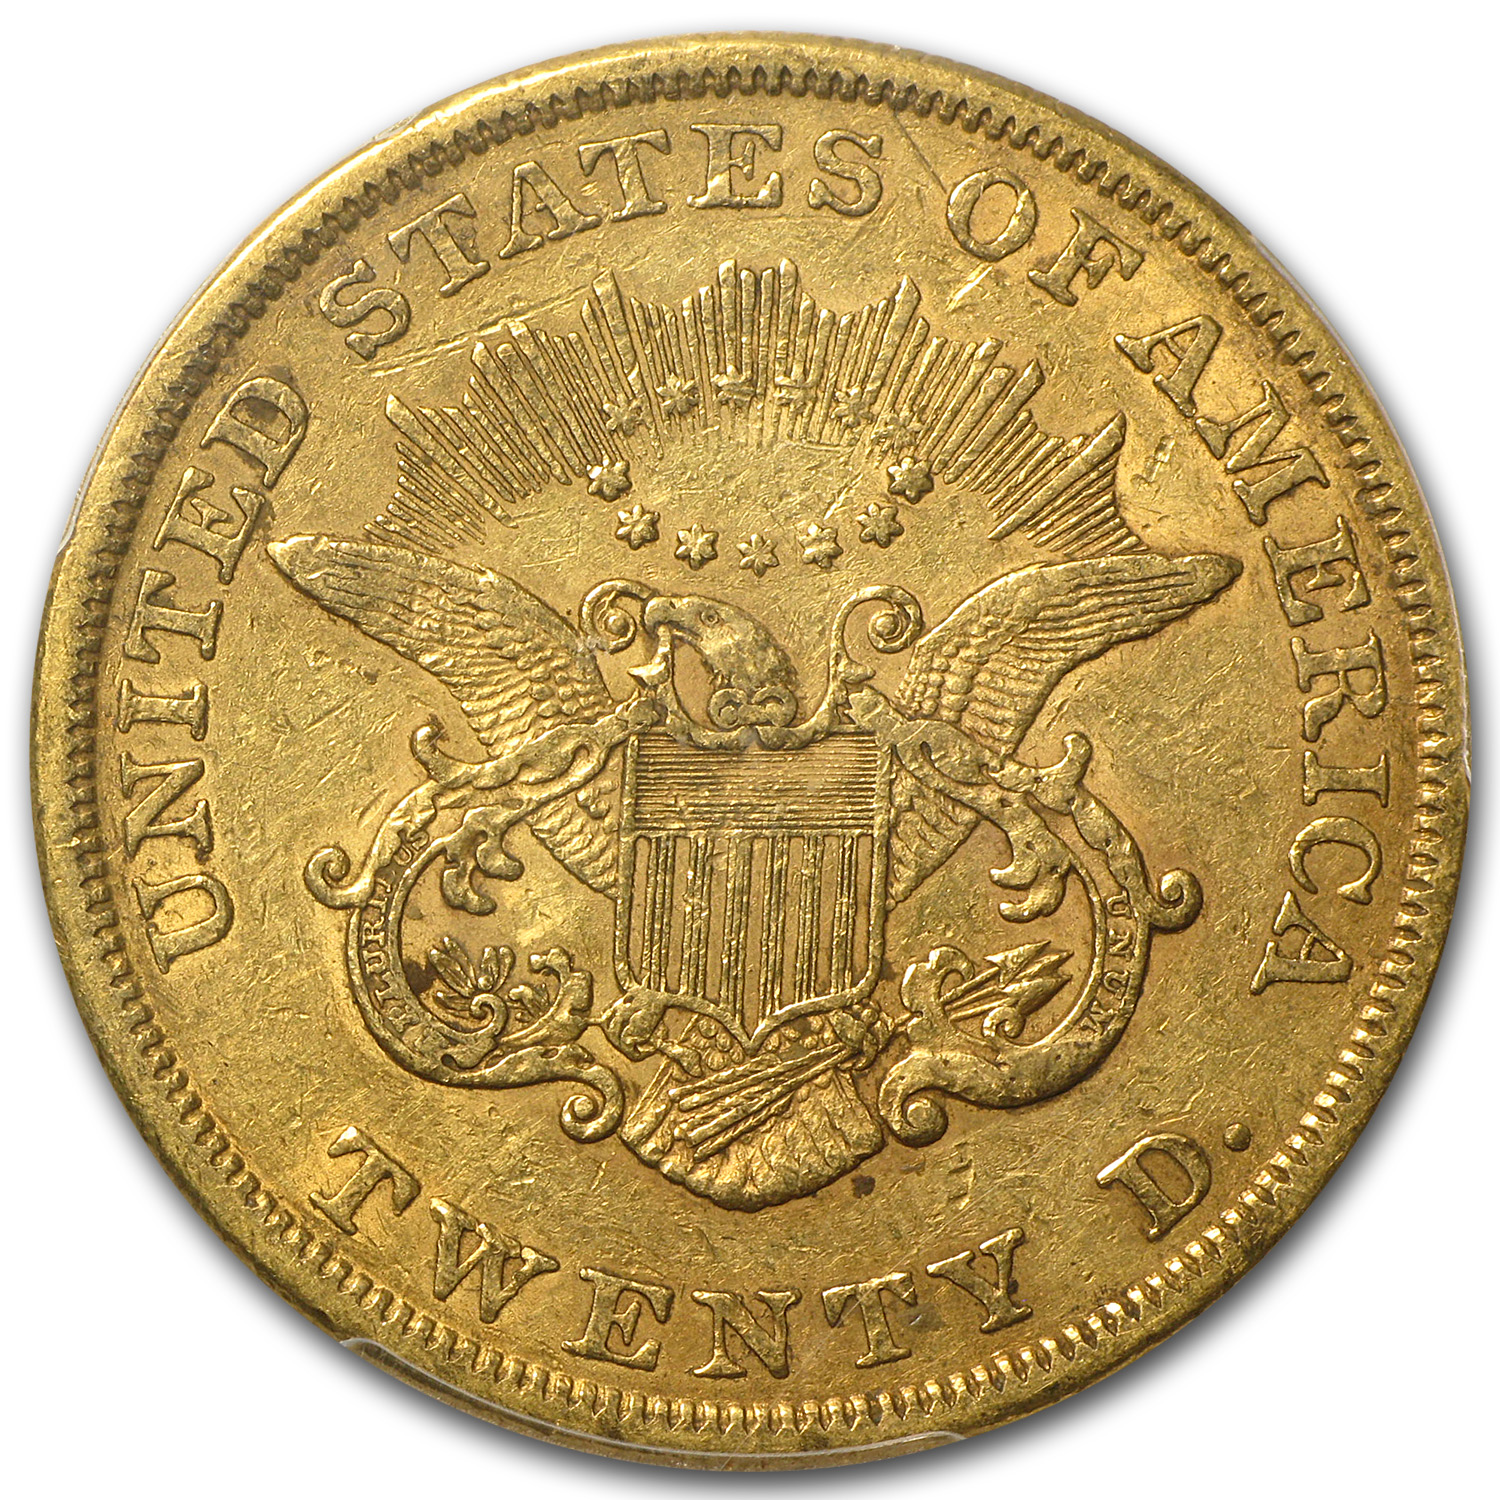 1856 $20 Liberty Gold Double Eagle XF-40 PCGS